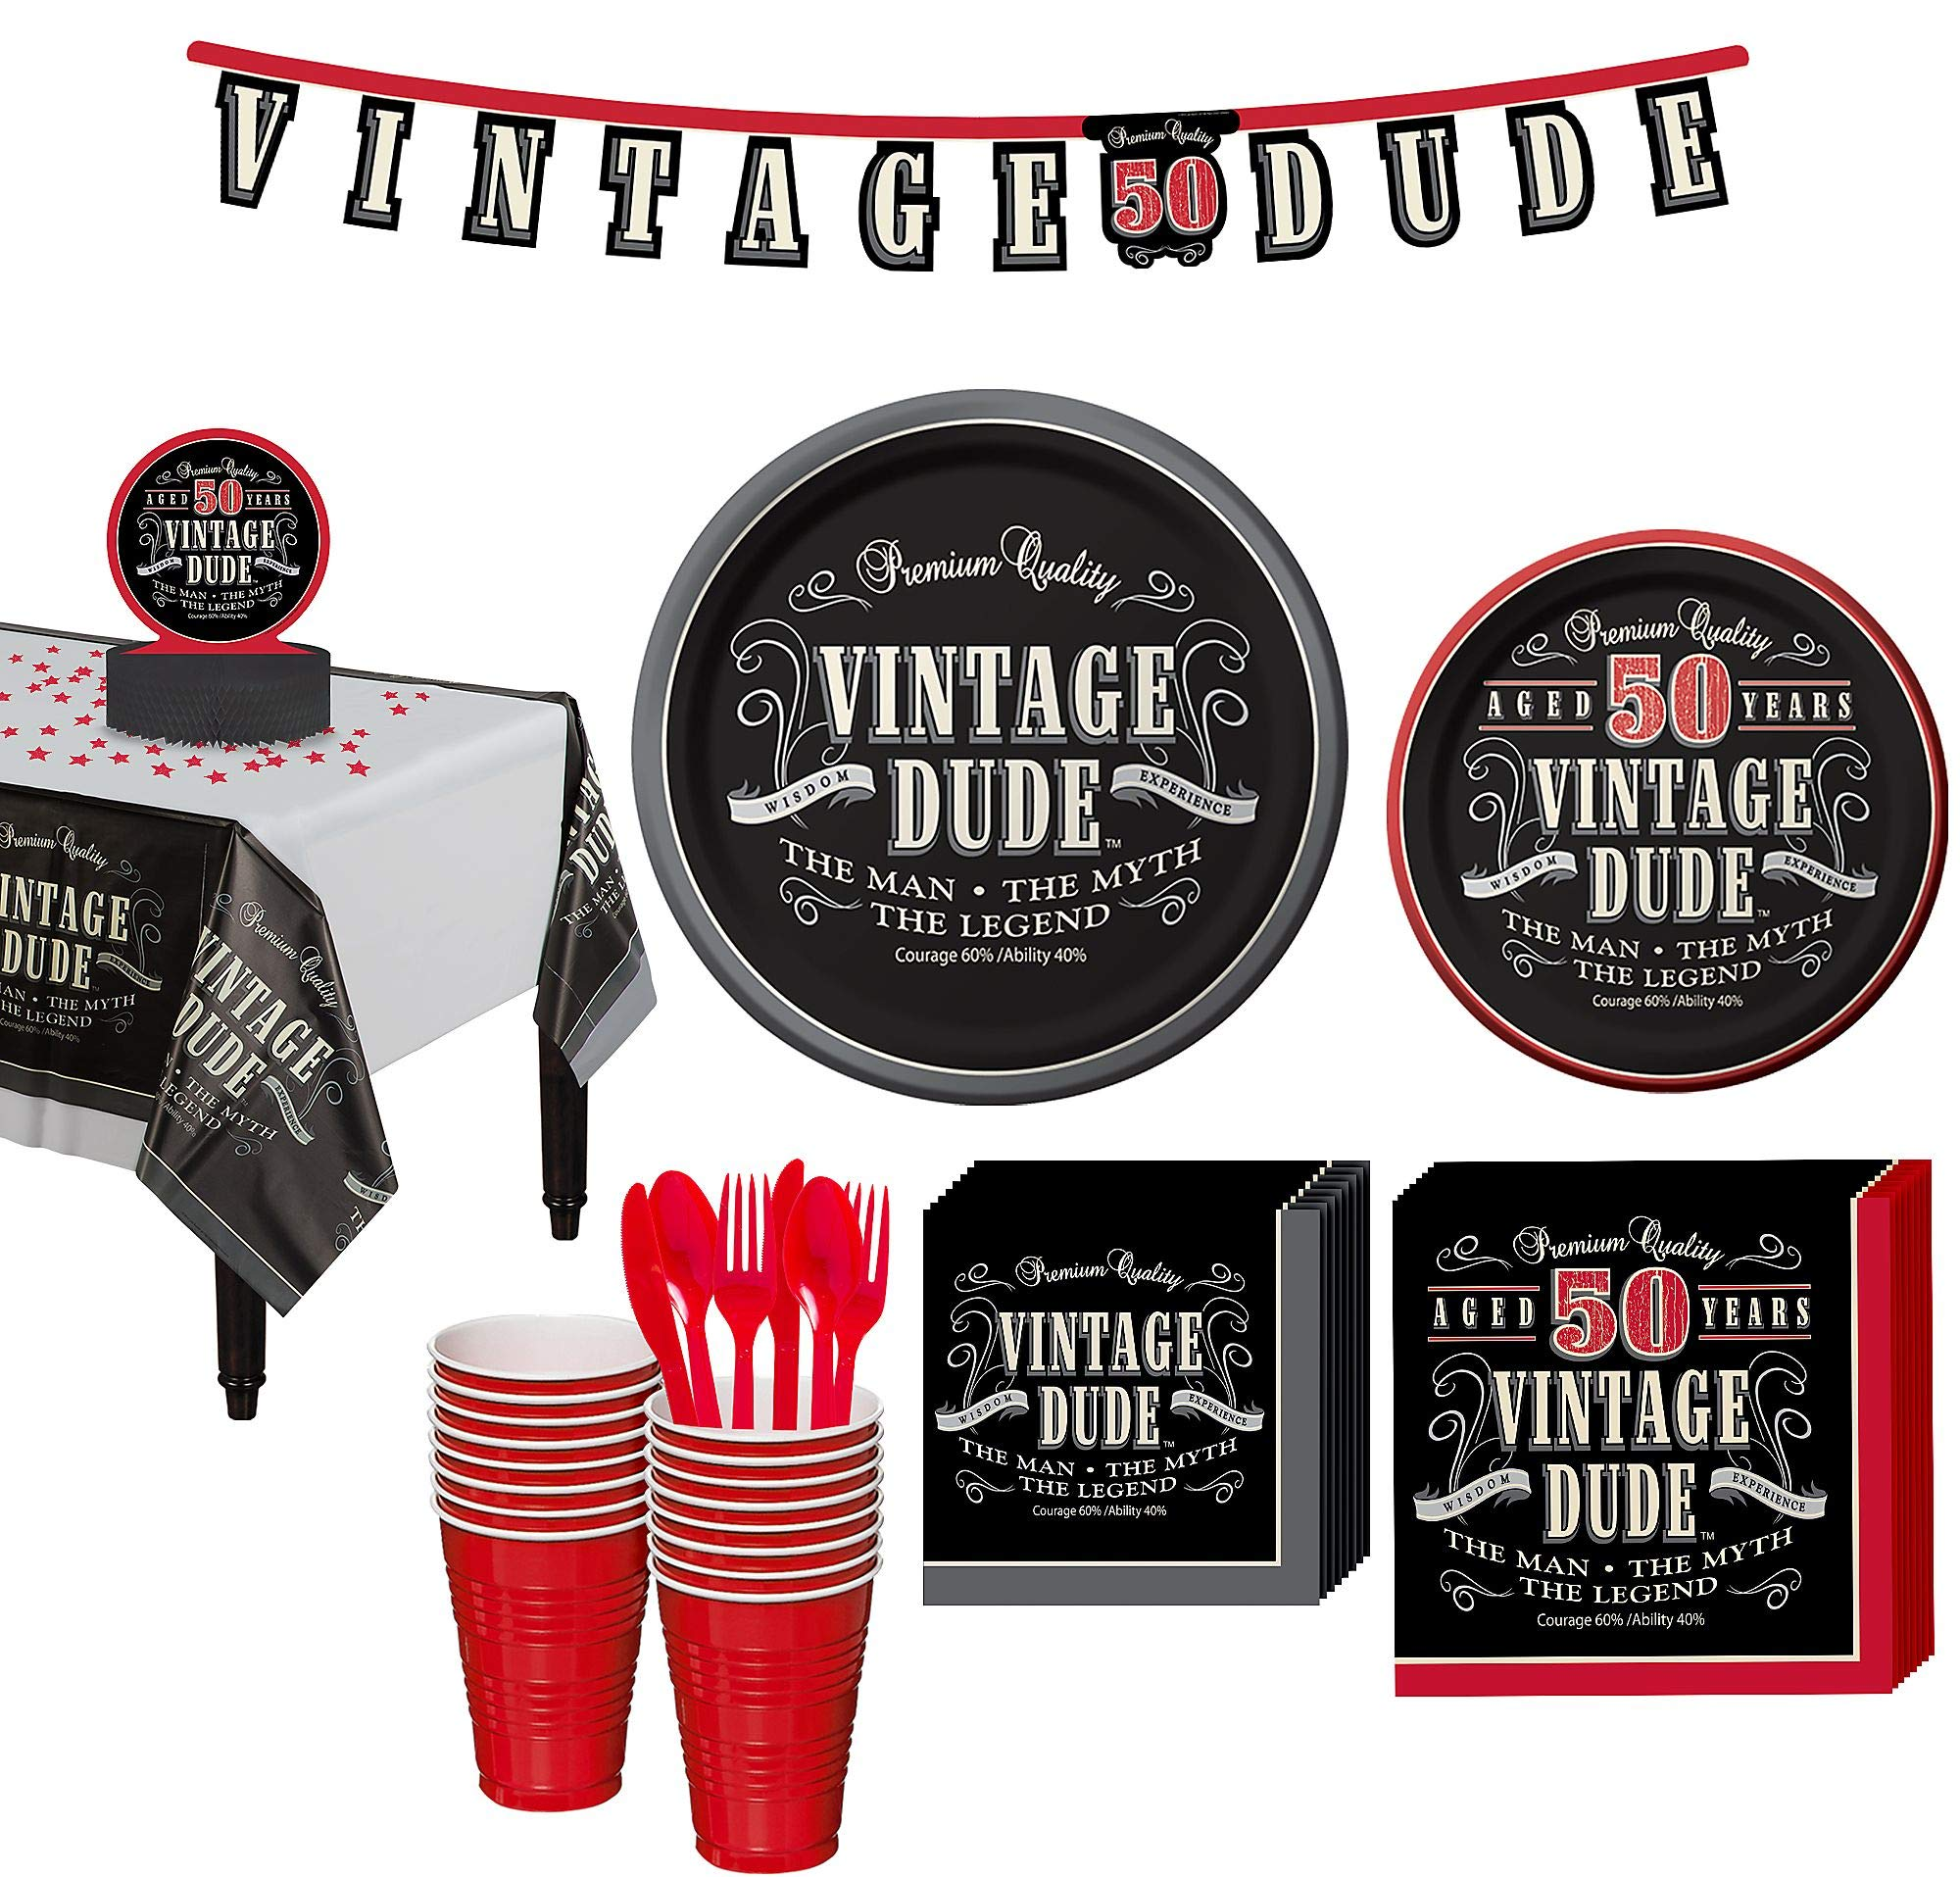 Party City Vintage Dude 50th Birthday Party Kit for 16 Guests, 167 Pieces, Includes Plates, Napkins, and Decorations